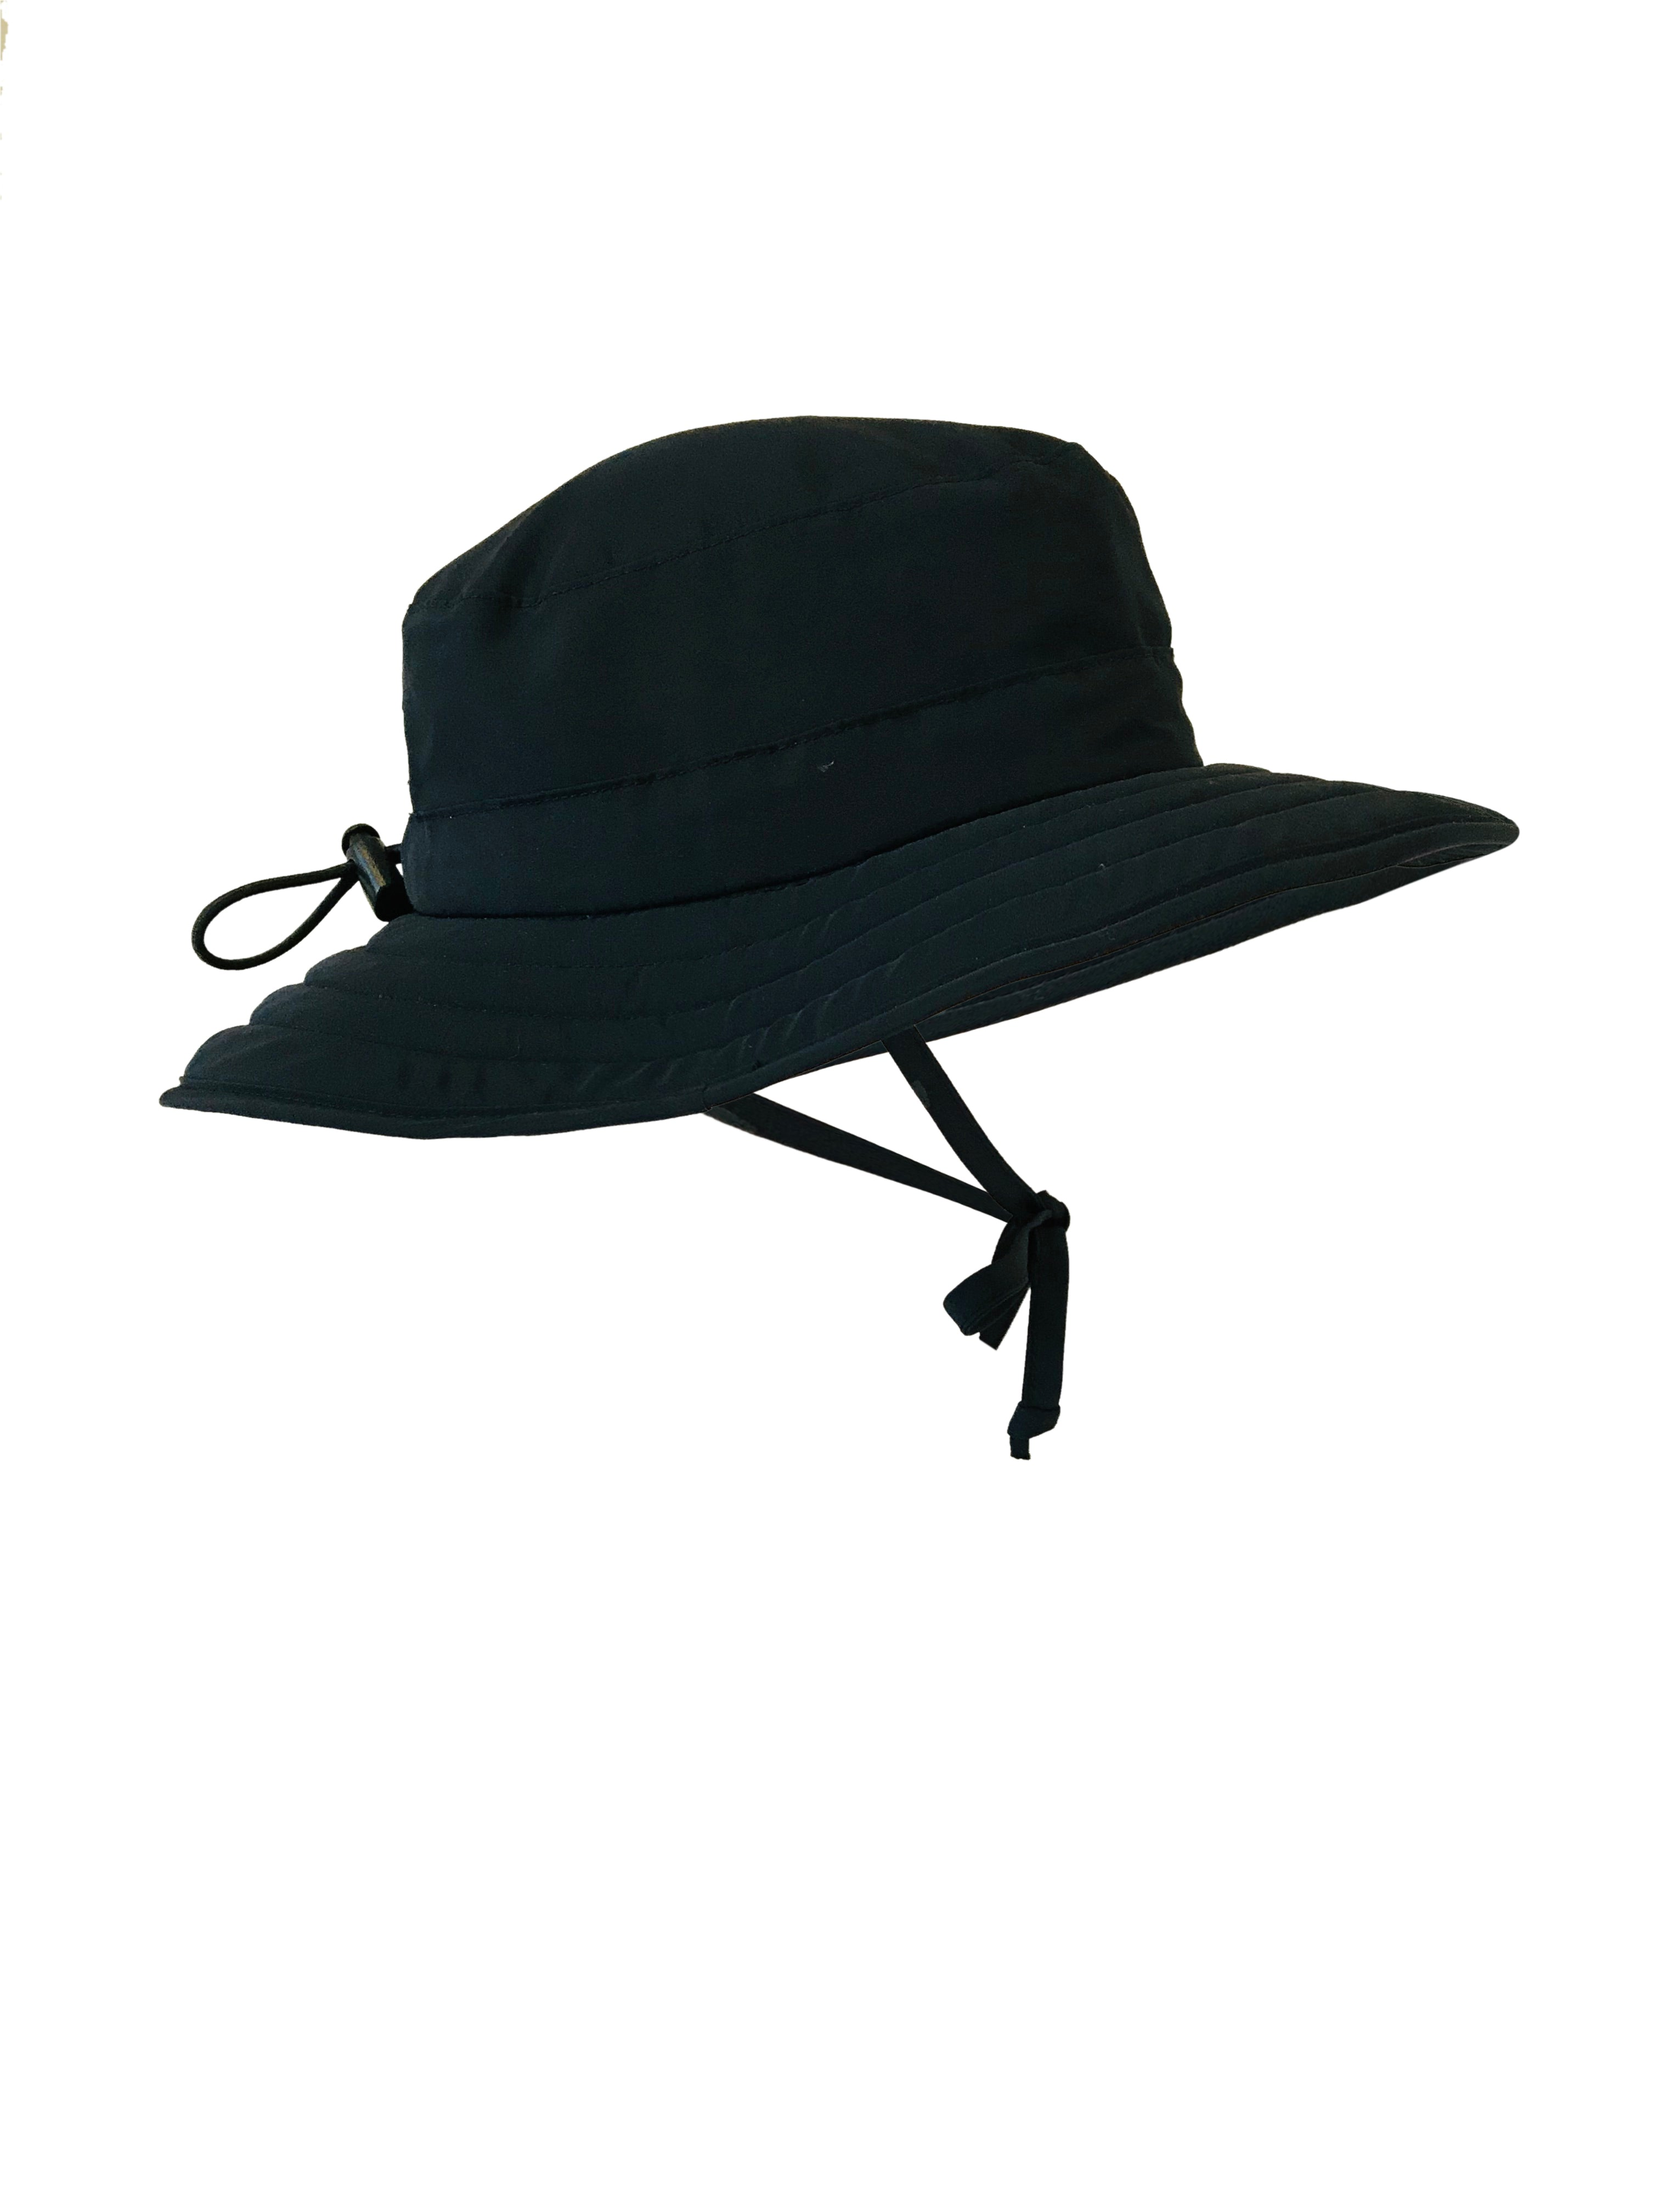 ZeuKnLu Black Sun Hat without the removable liner side view